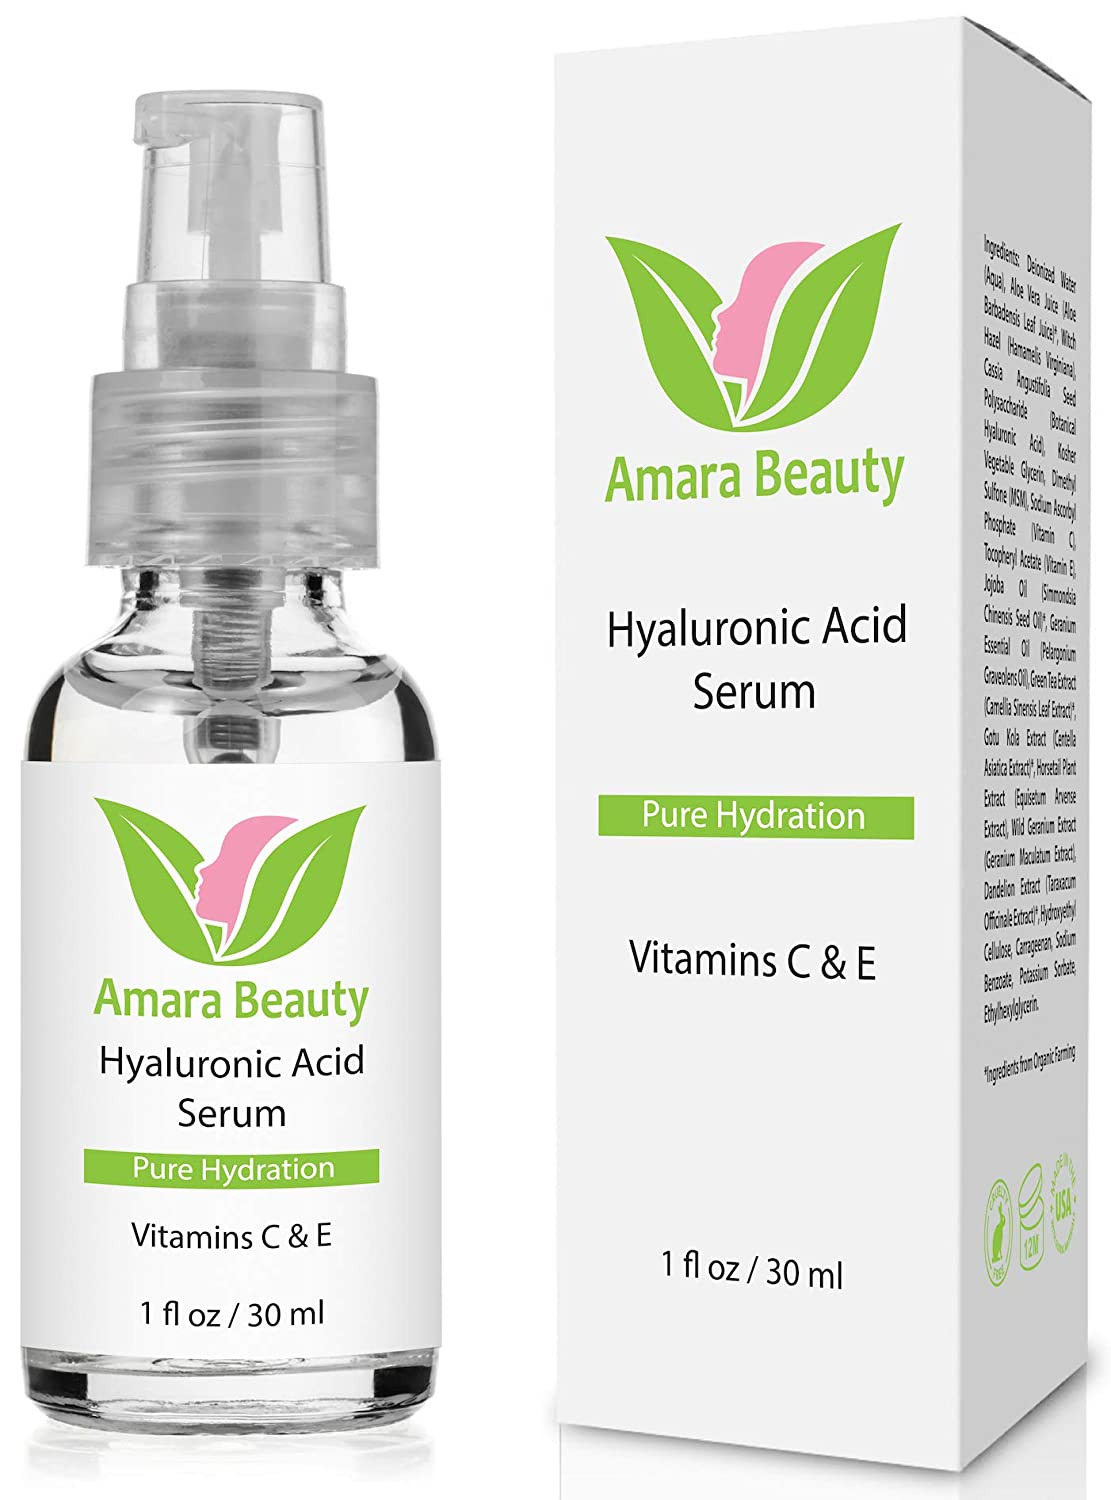 Top 10 Best Hyaluronic Acid Serum Reviews in 2020 2